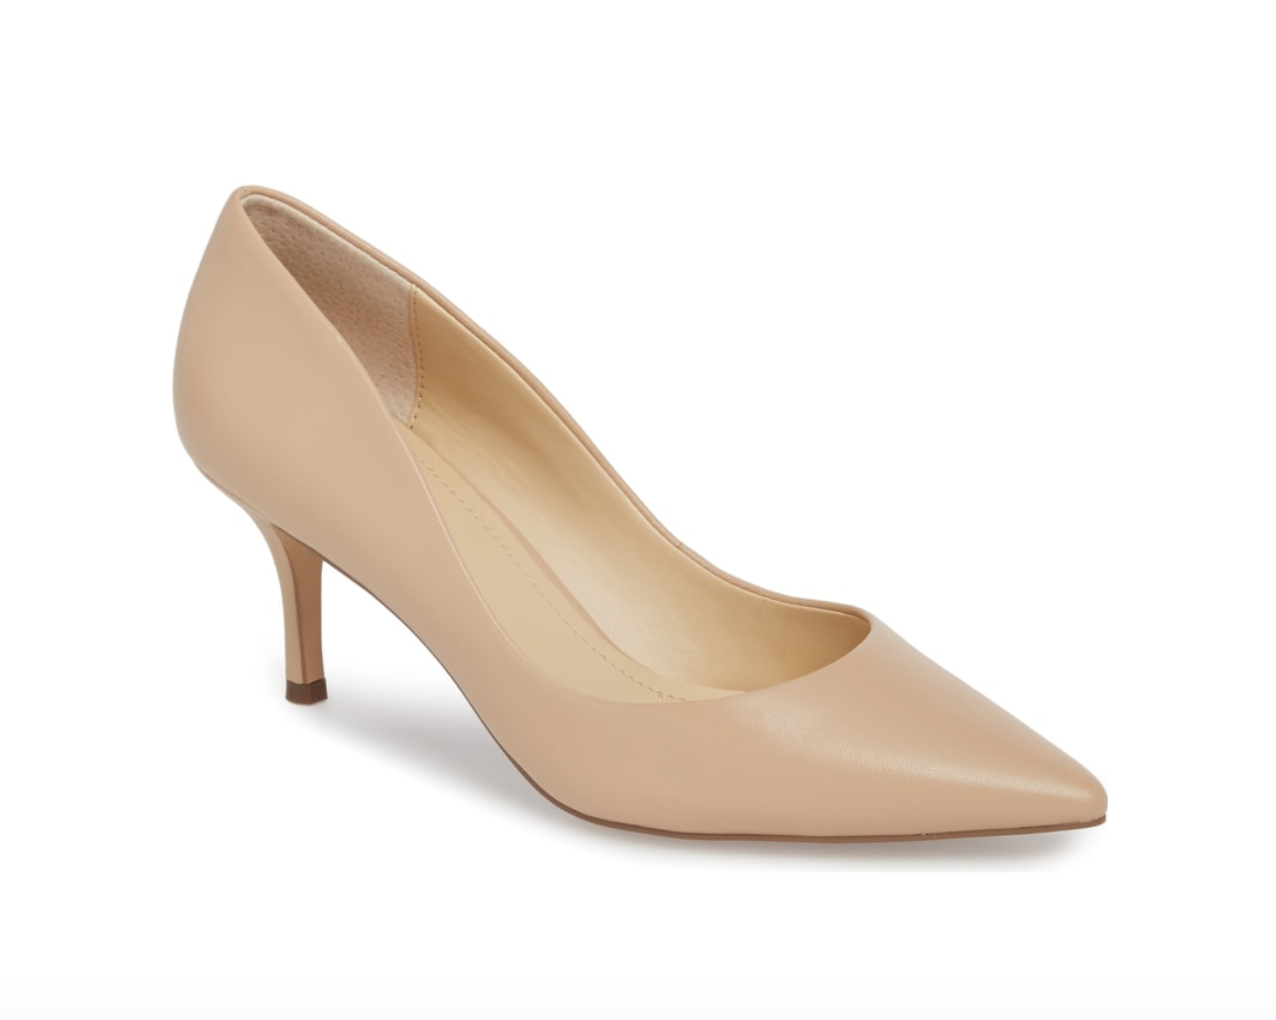 Addie Pump By Charles David - A nude heel is perfect any season and these are no exception. The kitten heel makes them easy to wear all day and the pointy toe dresses them up. These run a half size too large so order down.BUY HERE